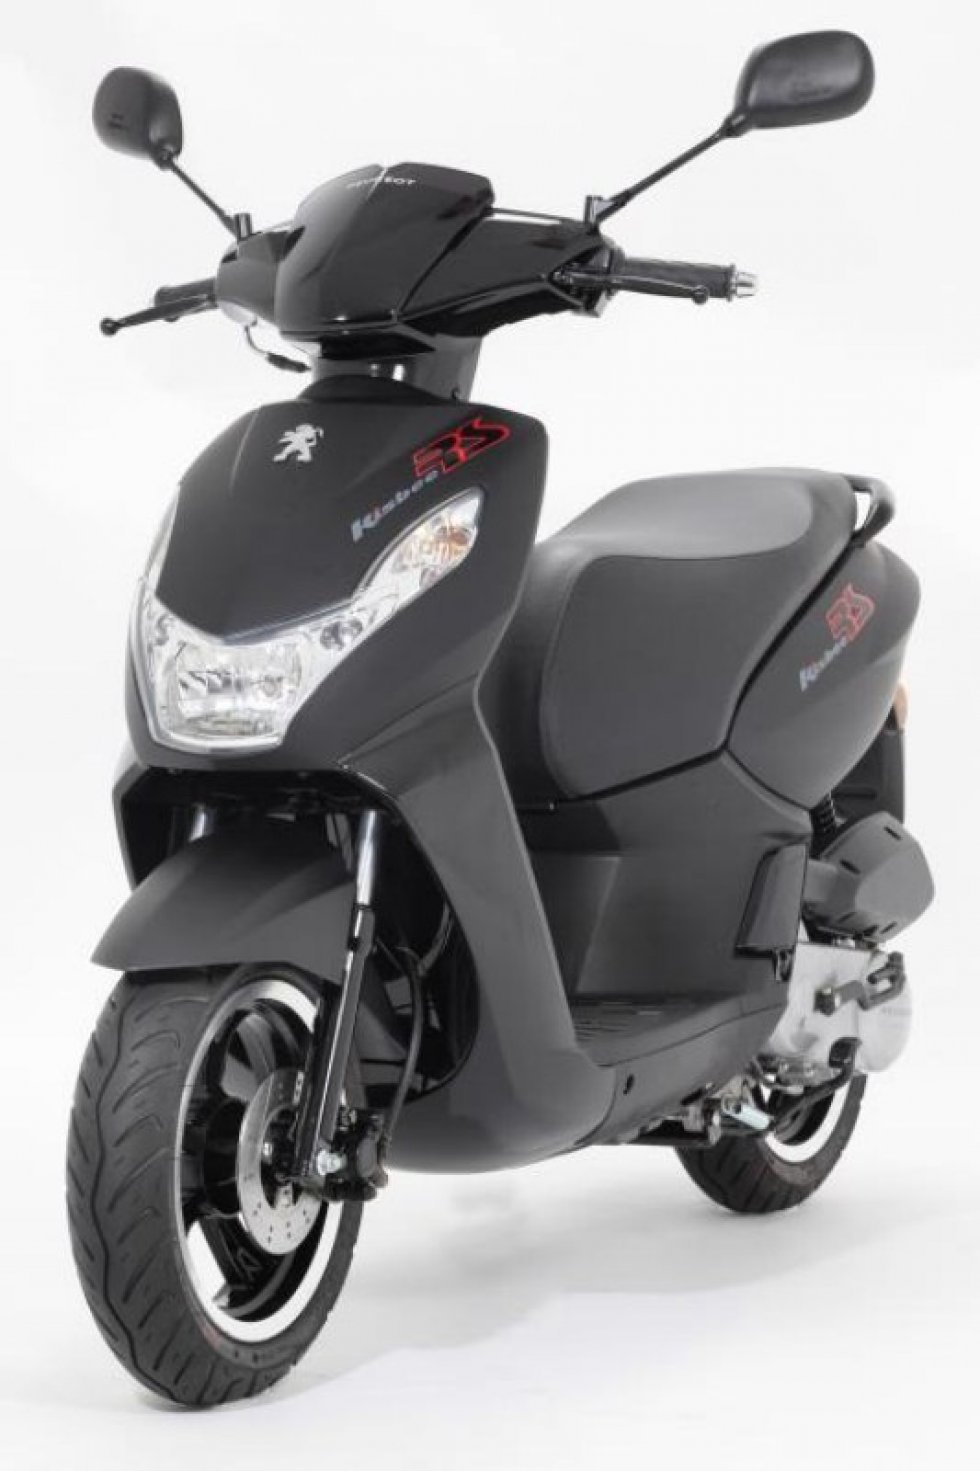 scooter neuf peugeot kisbee rs 50cc vente scooter la seyne sur mer toulon l 39 atelier du scoot. Black Bedroom Furniture Sets. Home Design Ideas